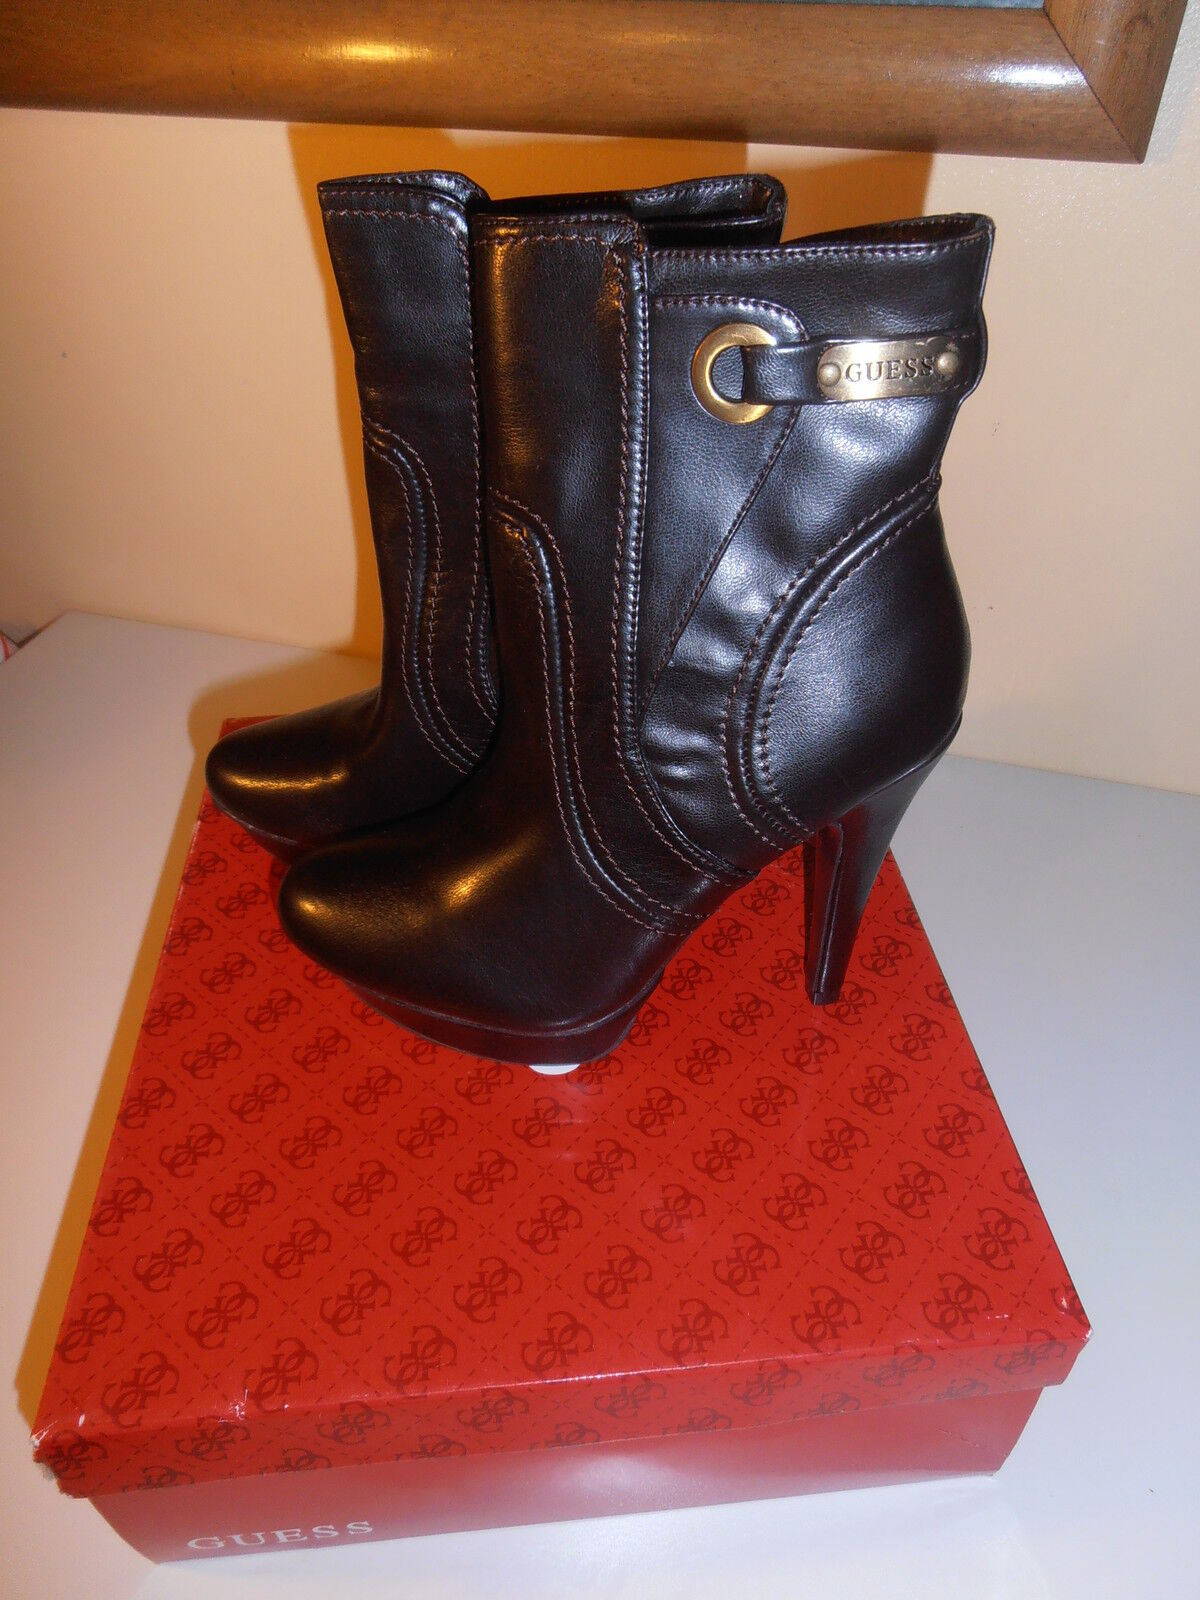 GUESS BOOTS BROWNS COLOR SIZE 6.0 NICE & CHEAP